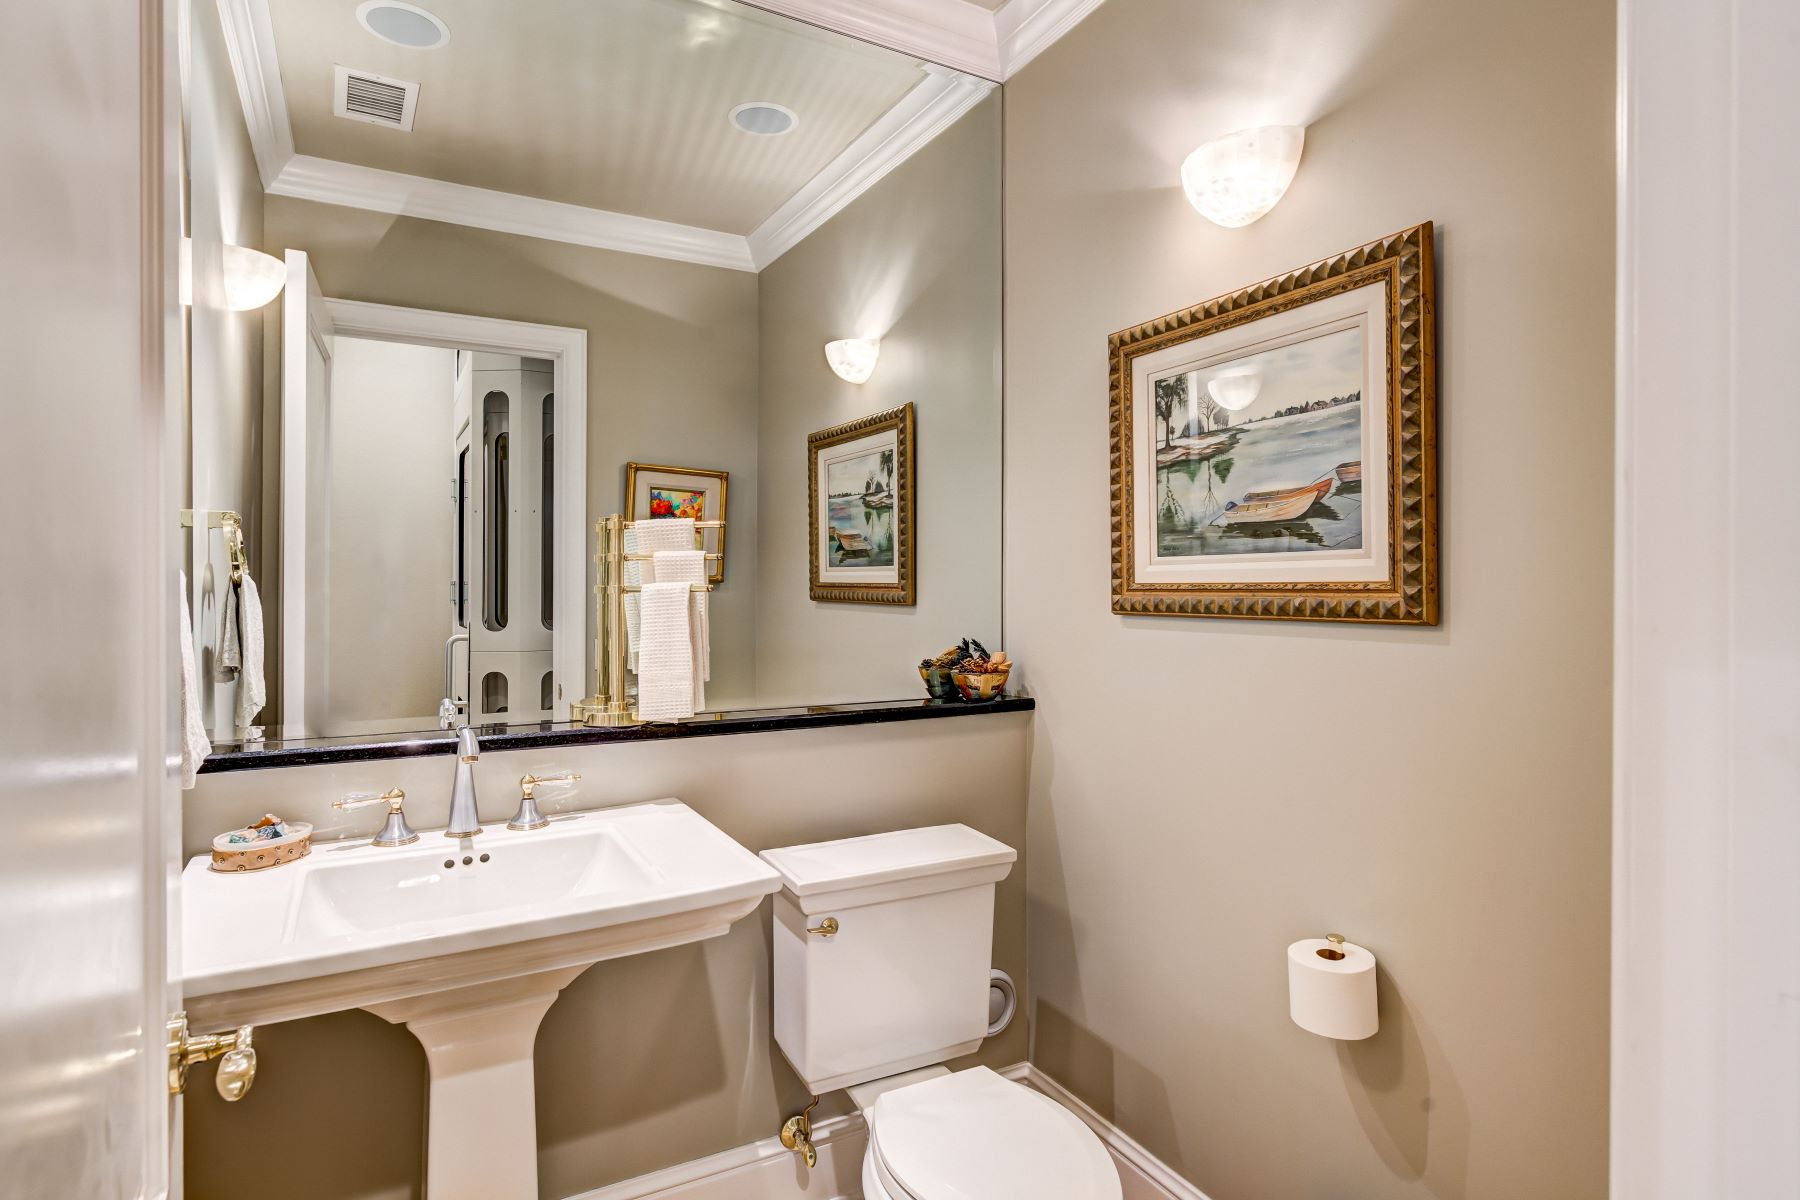 Additional photo for property listing at Elegant Townhouse Condo in The Residence 800 South Hanley Road #4E Clayton, Missouri 63105 United States